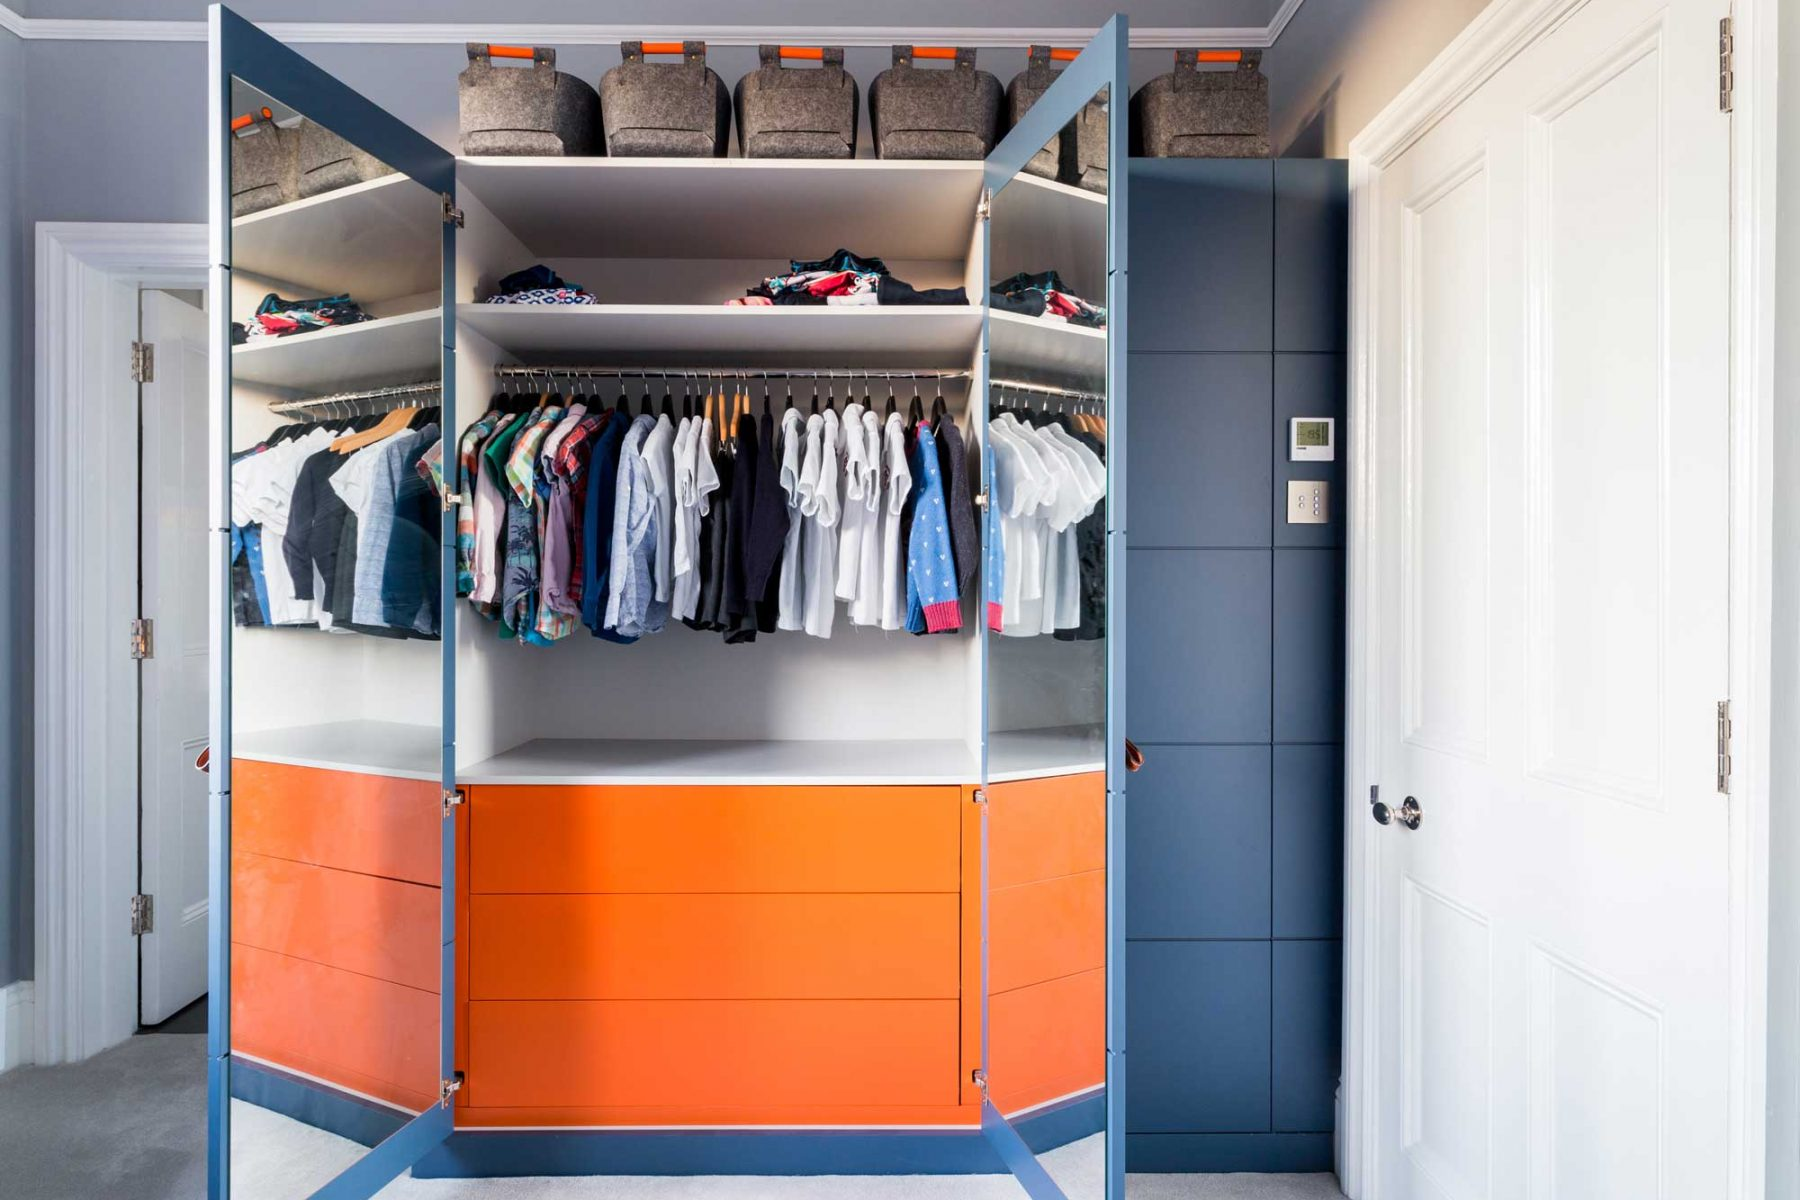 Custom-made wardrobe in boy's bedroom